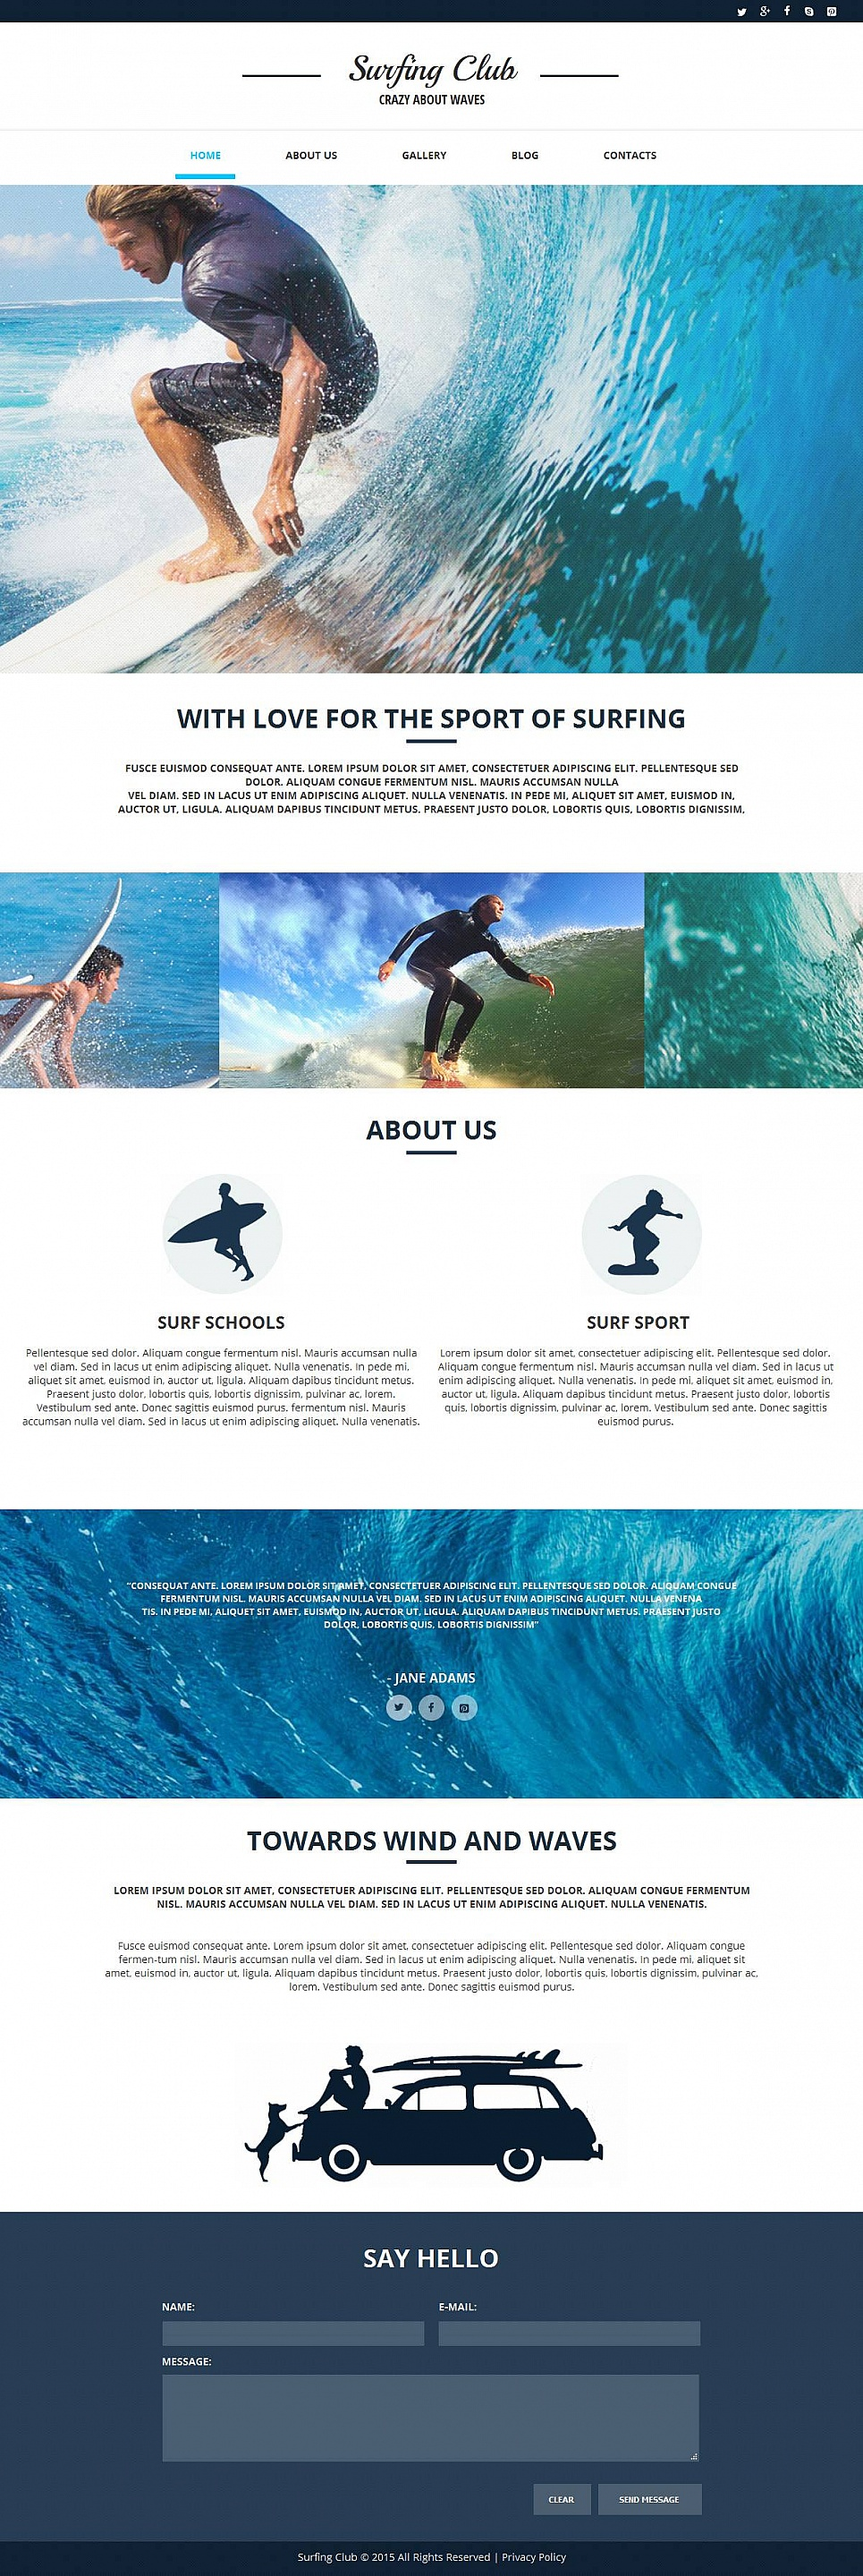 Complete Surf Website for Your Hobby - image